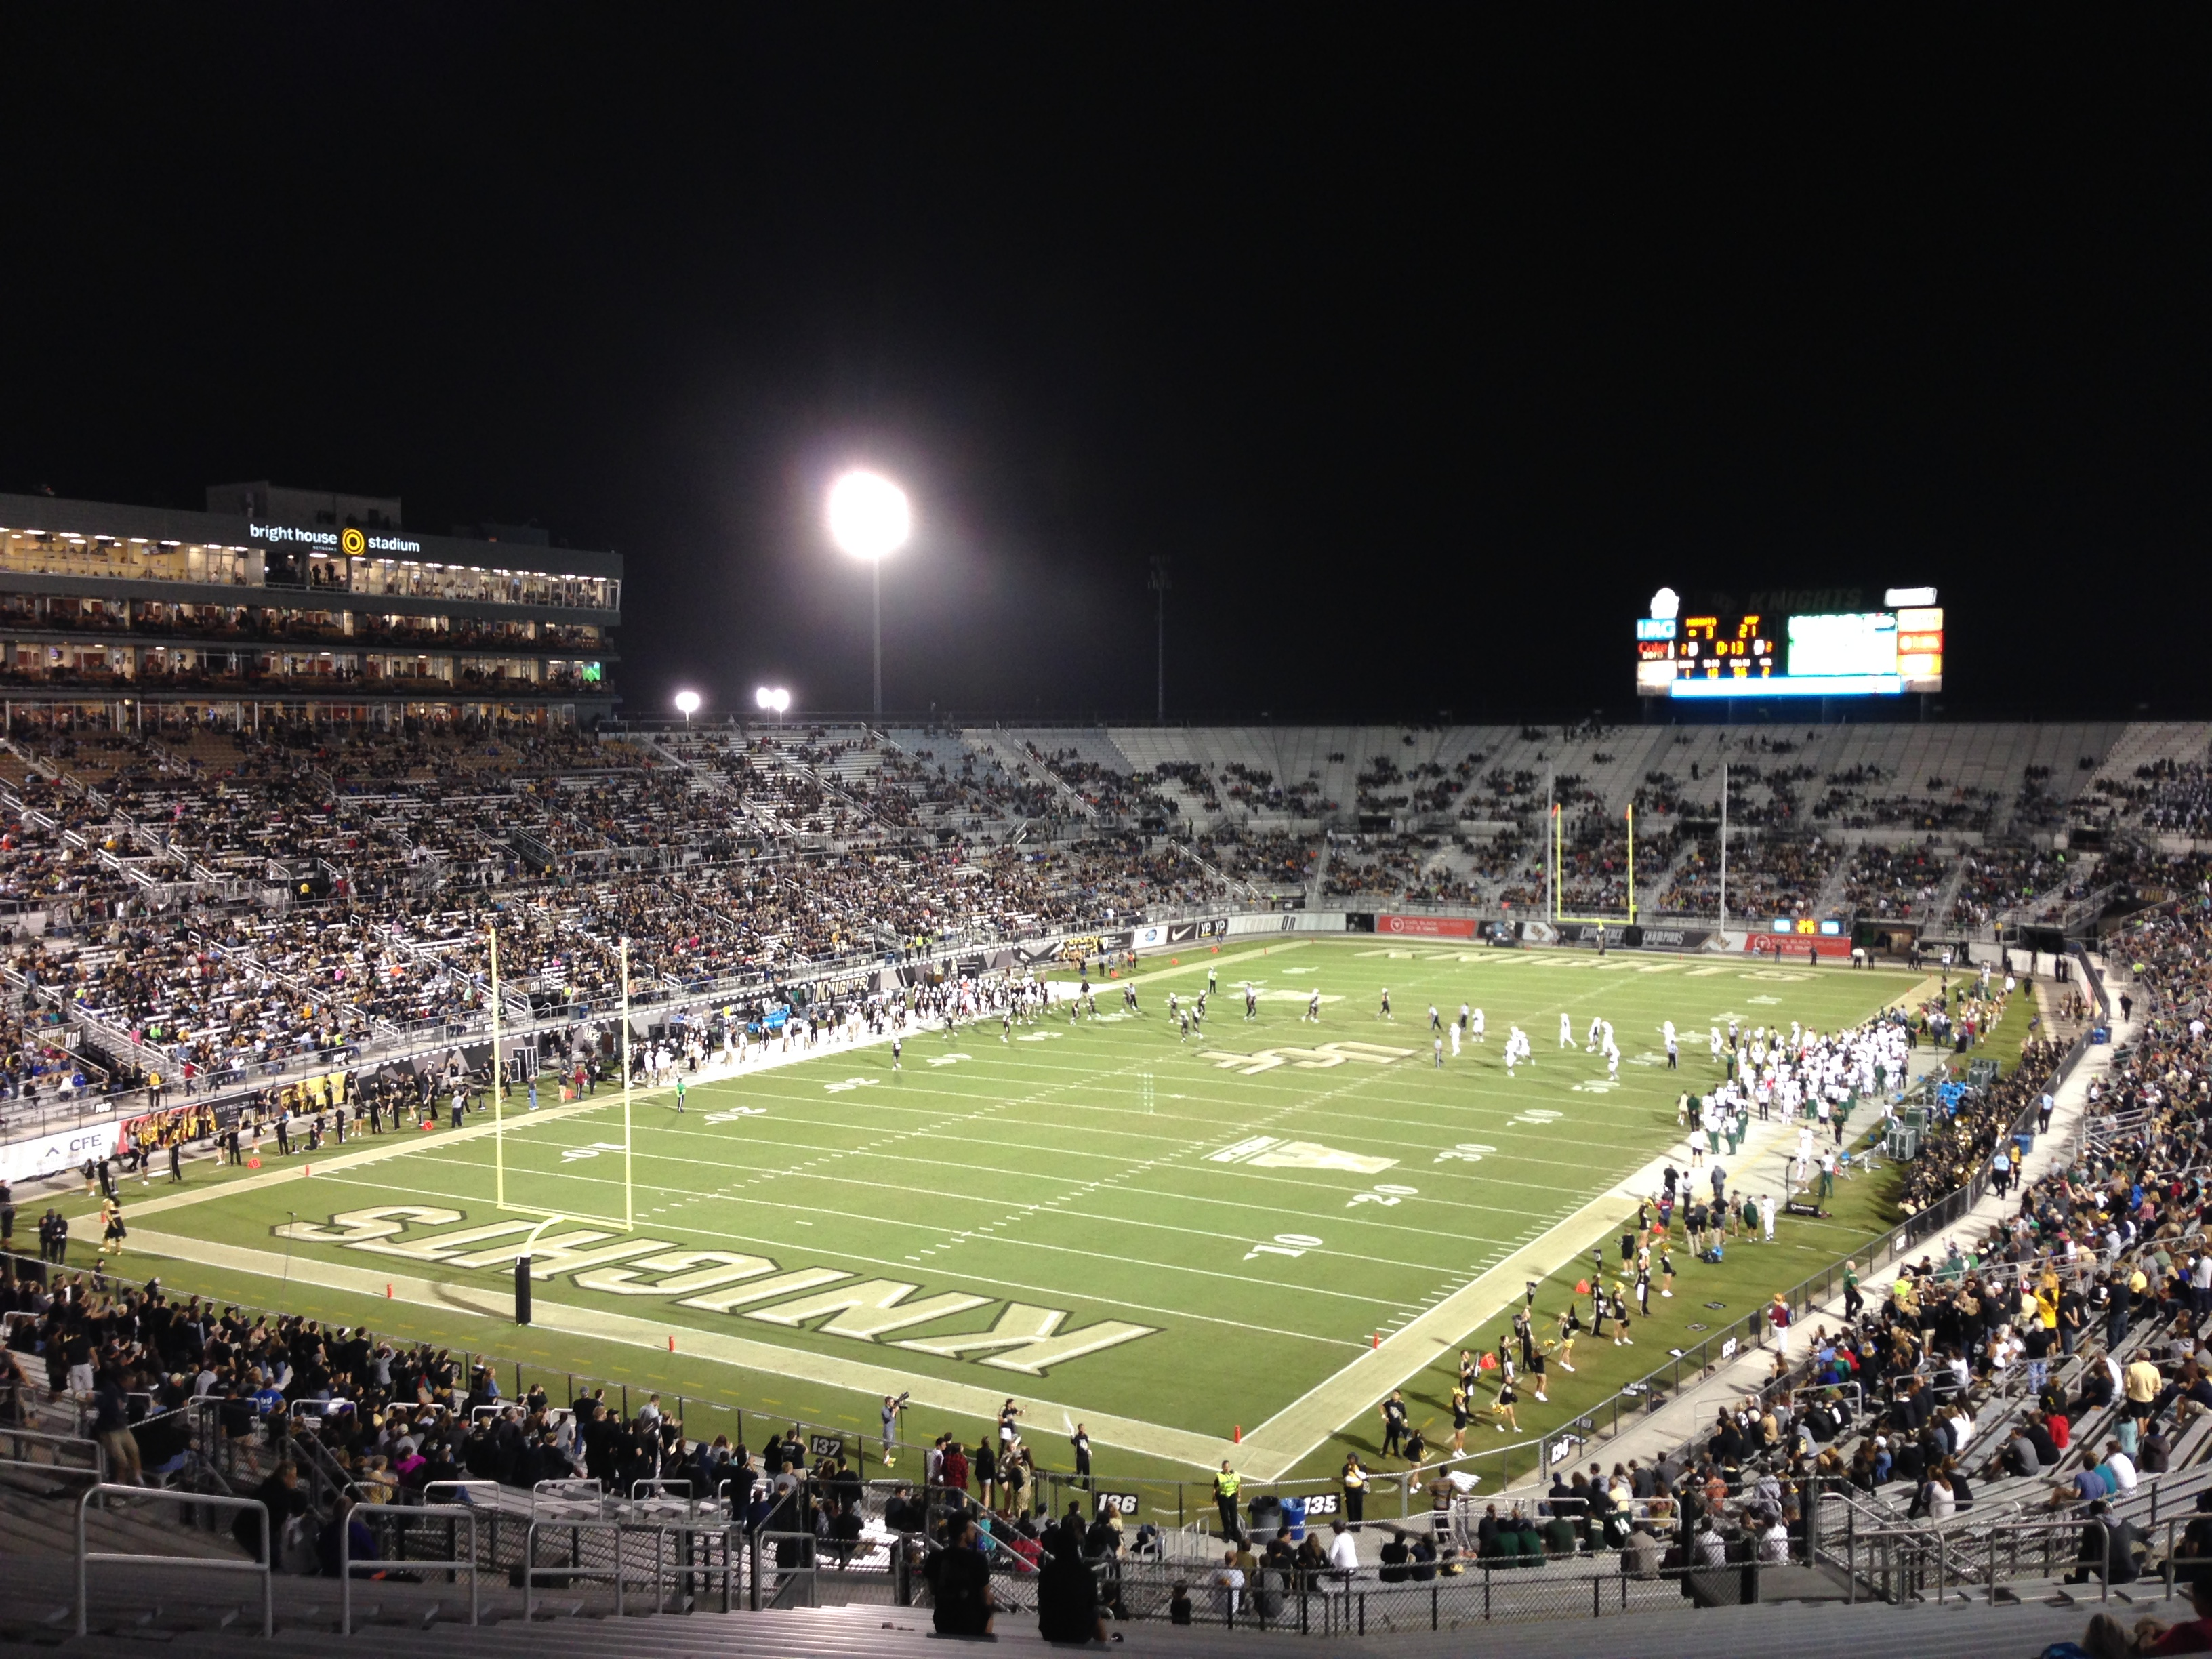 Bright house networks stadium ucf knights stadium journey for Right house